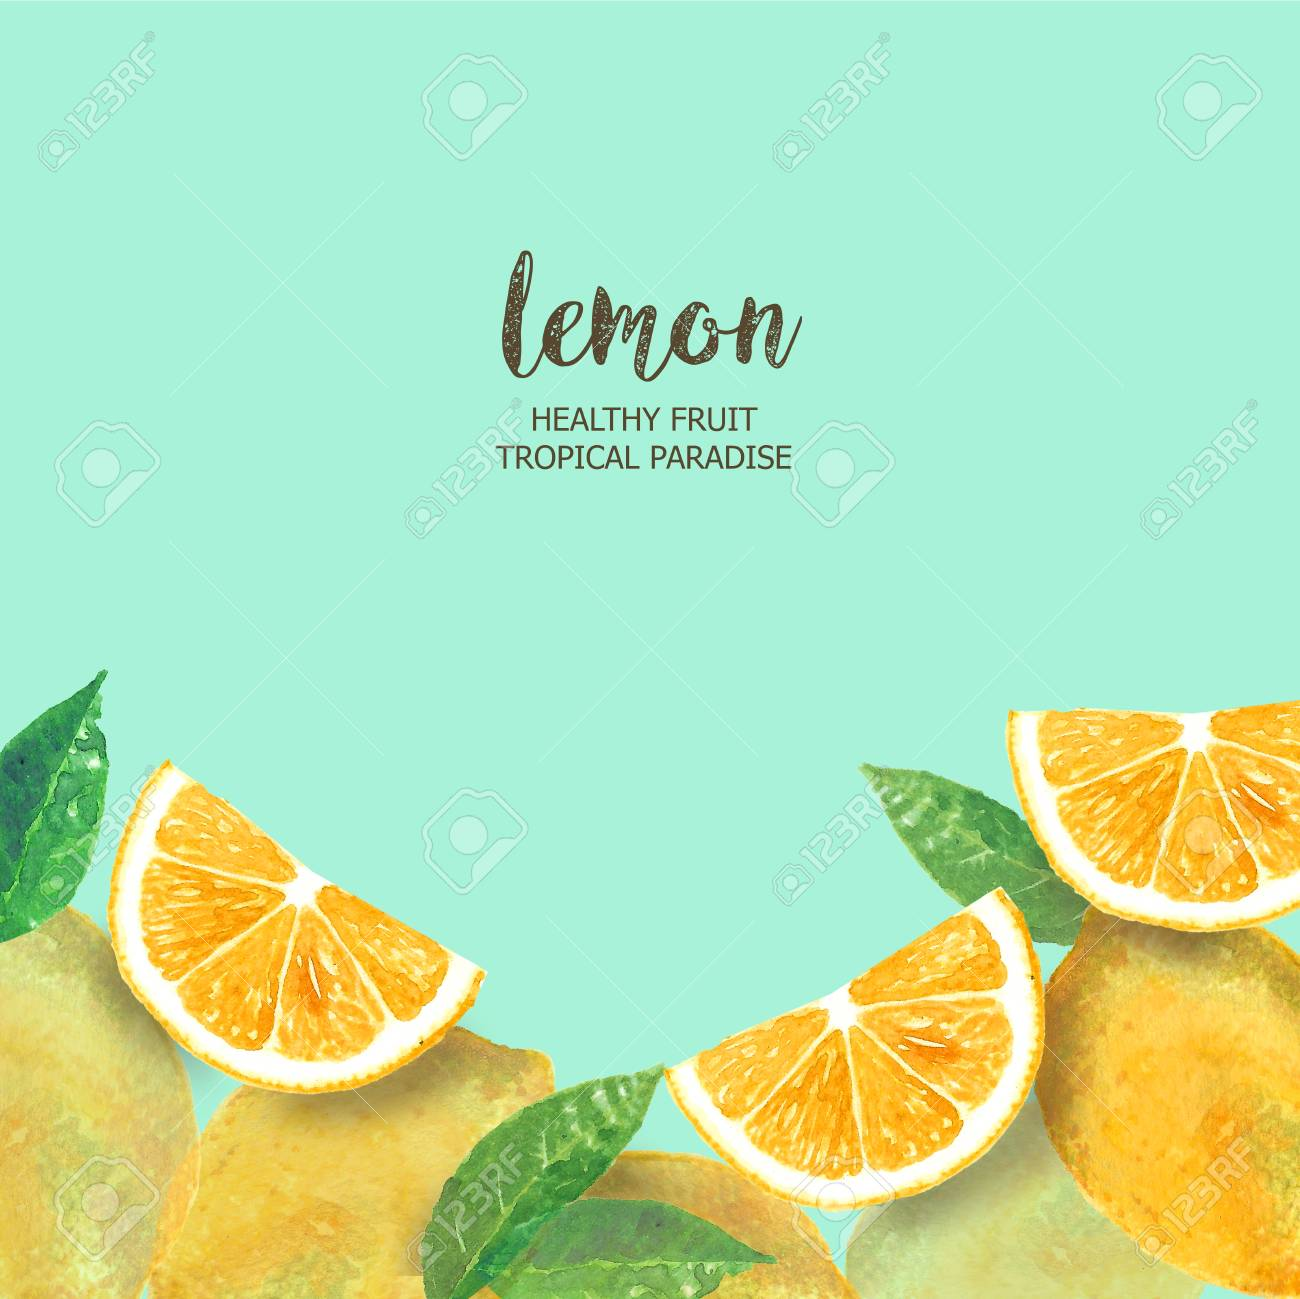 lemon background flat layout watercolor fresh slice cut lemon citrus stock photo picture and royalty free image image 101960019 lemon background flat layout watercolor fresh slice cut lemon citrus